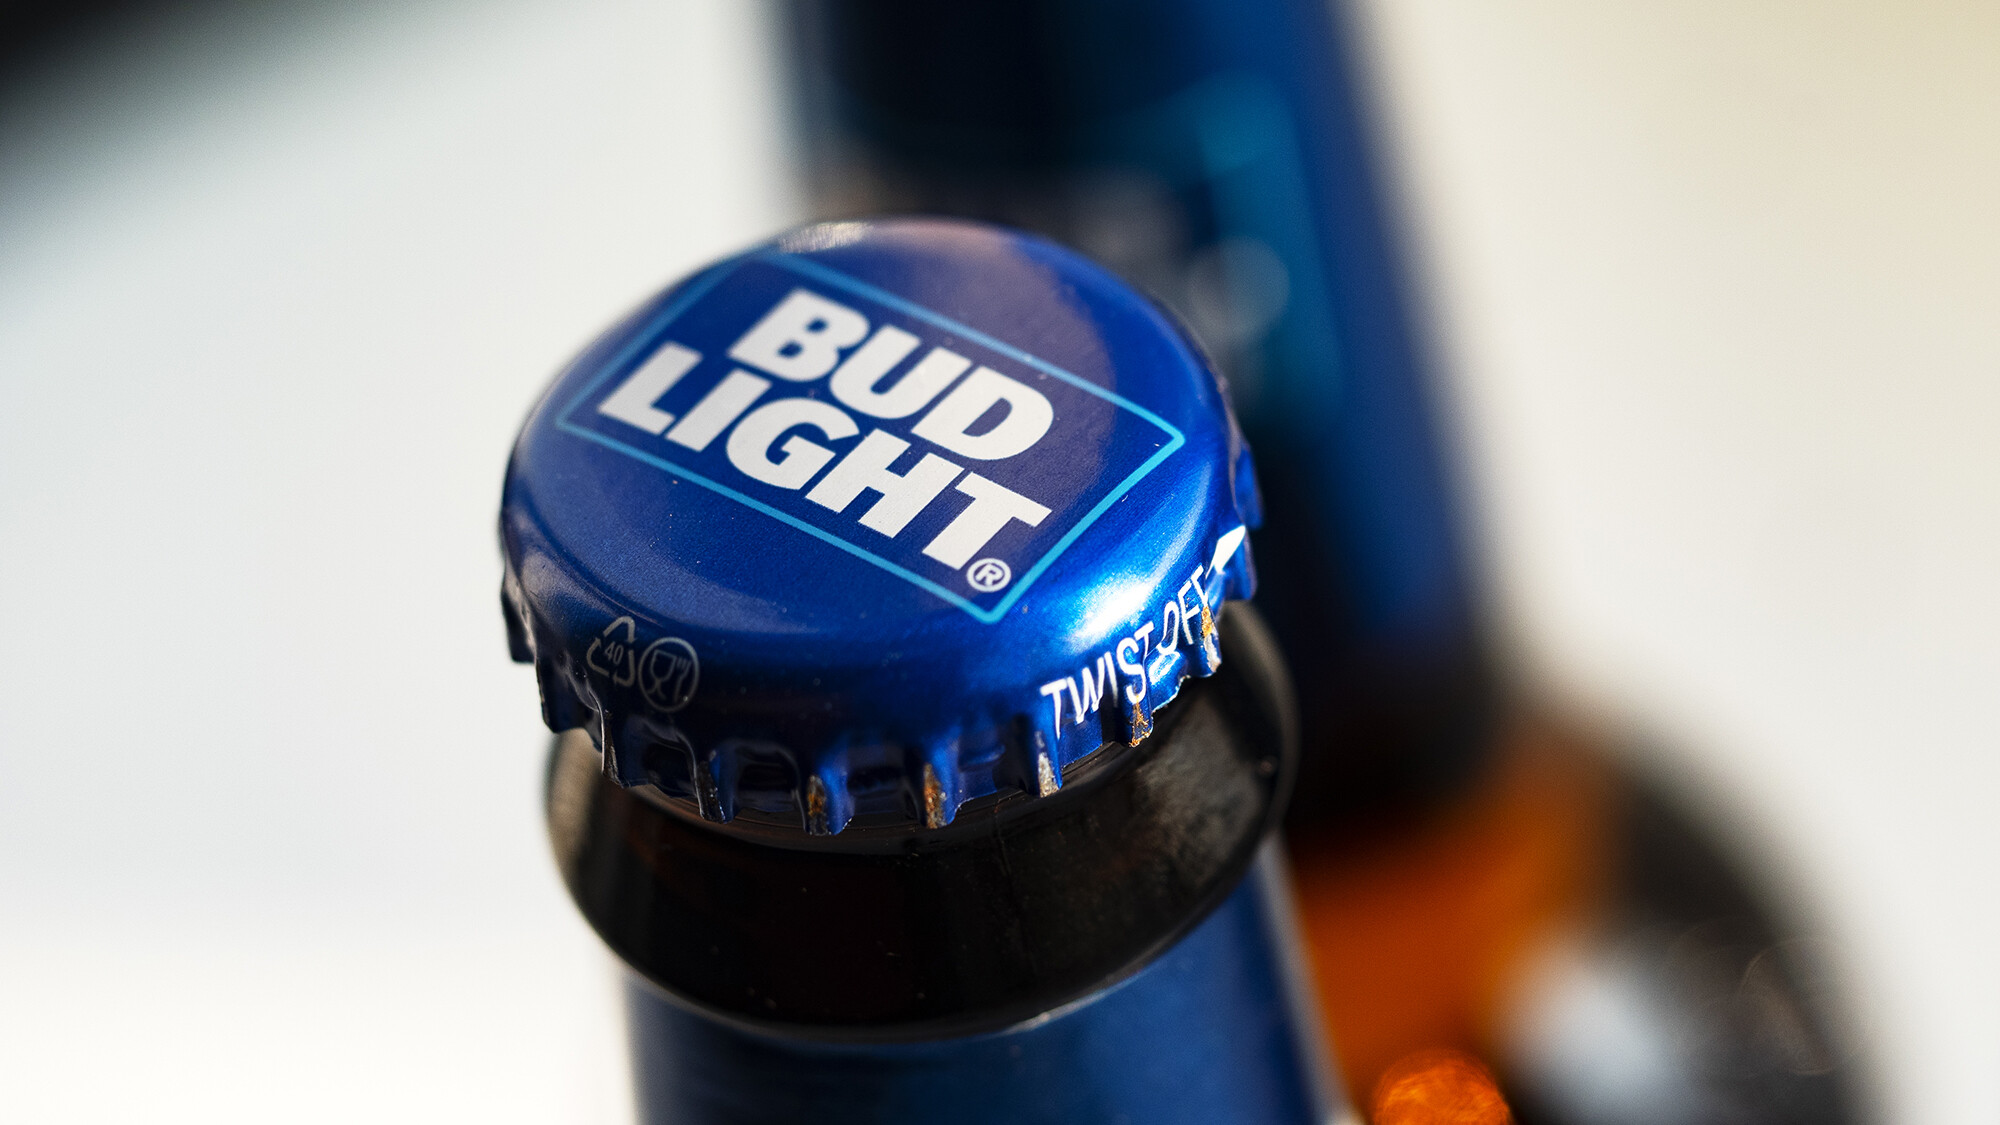 Bud Light hopes this beer is the next big thing